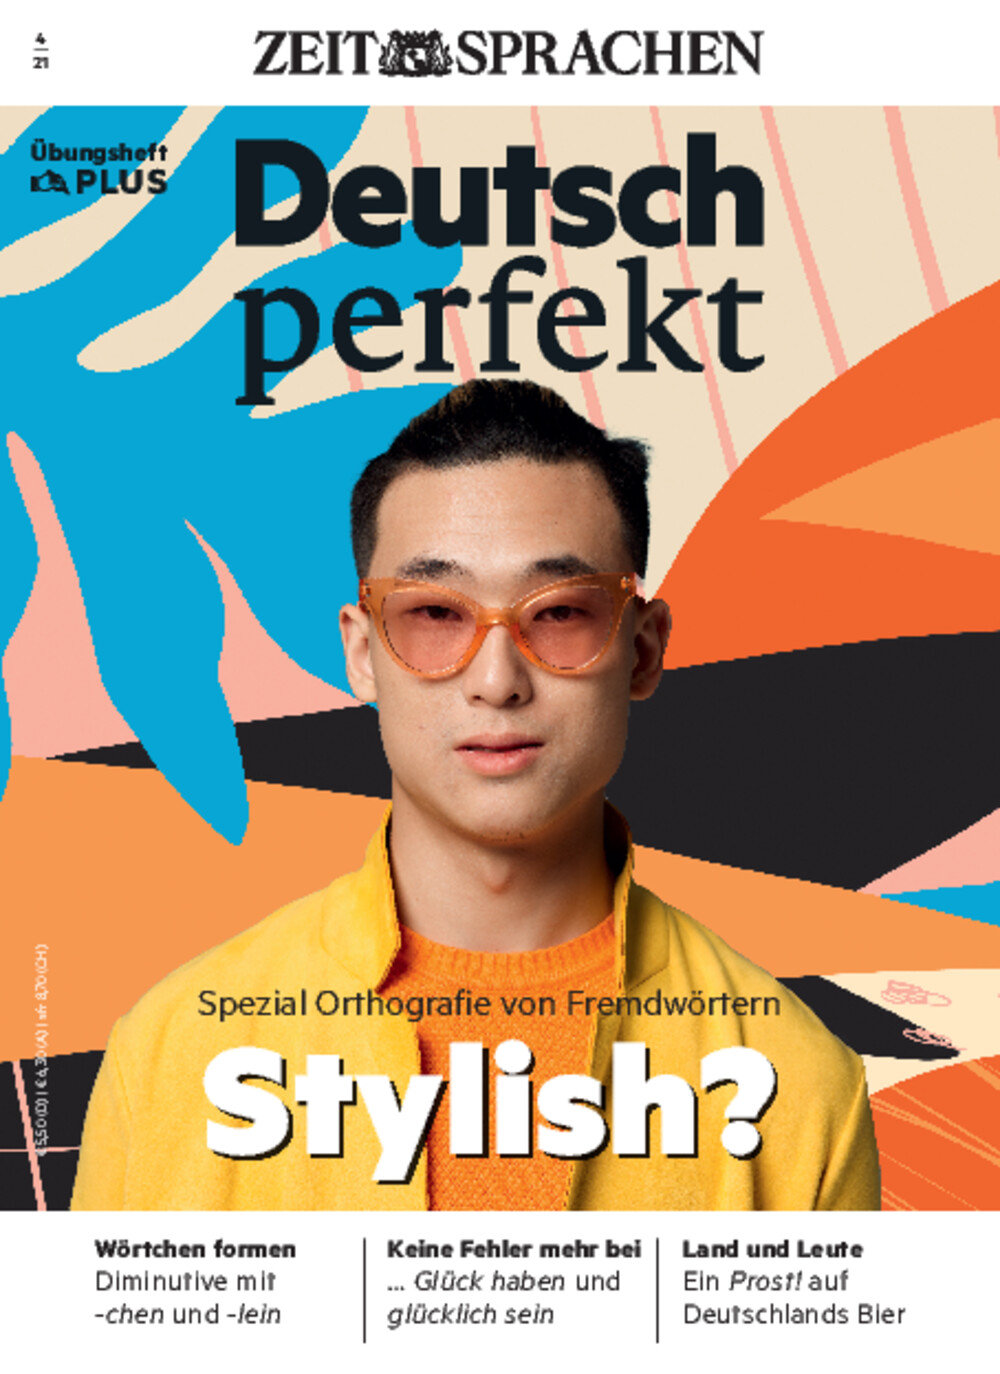 Deutsch perfekt PLUS 04/2021